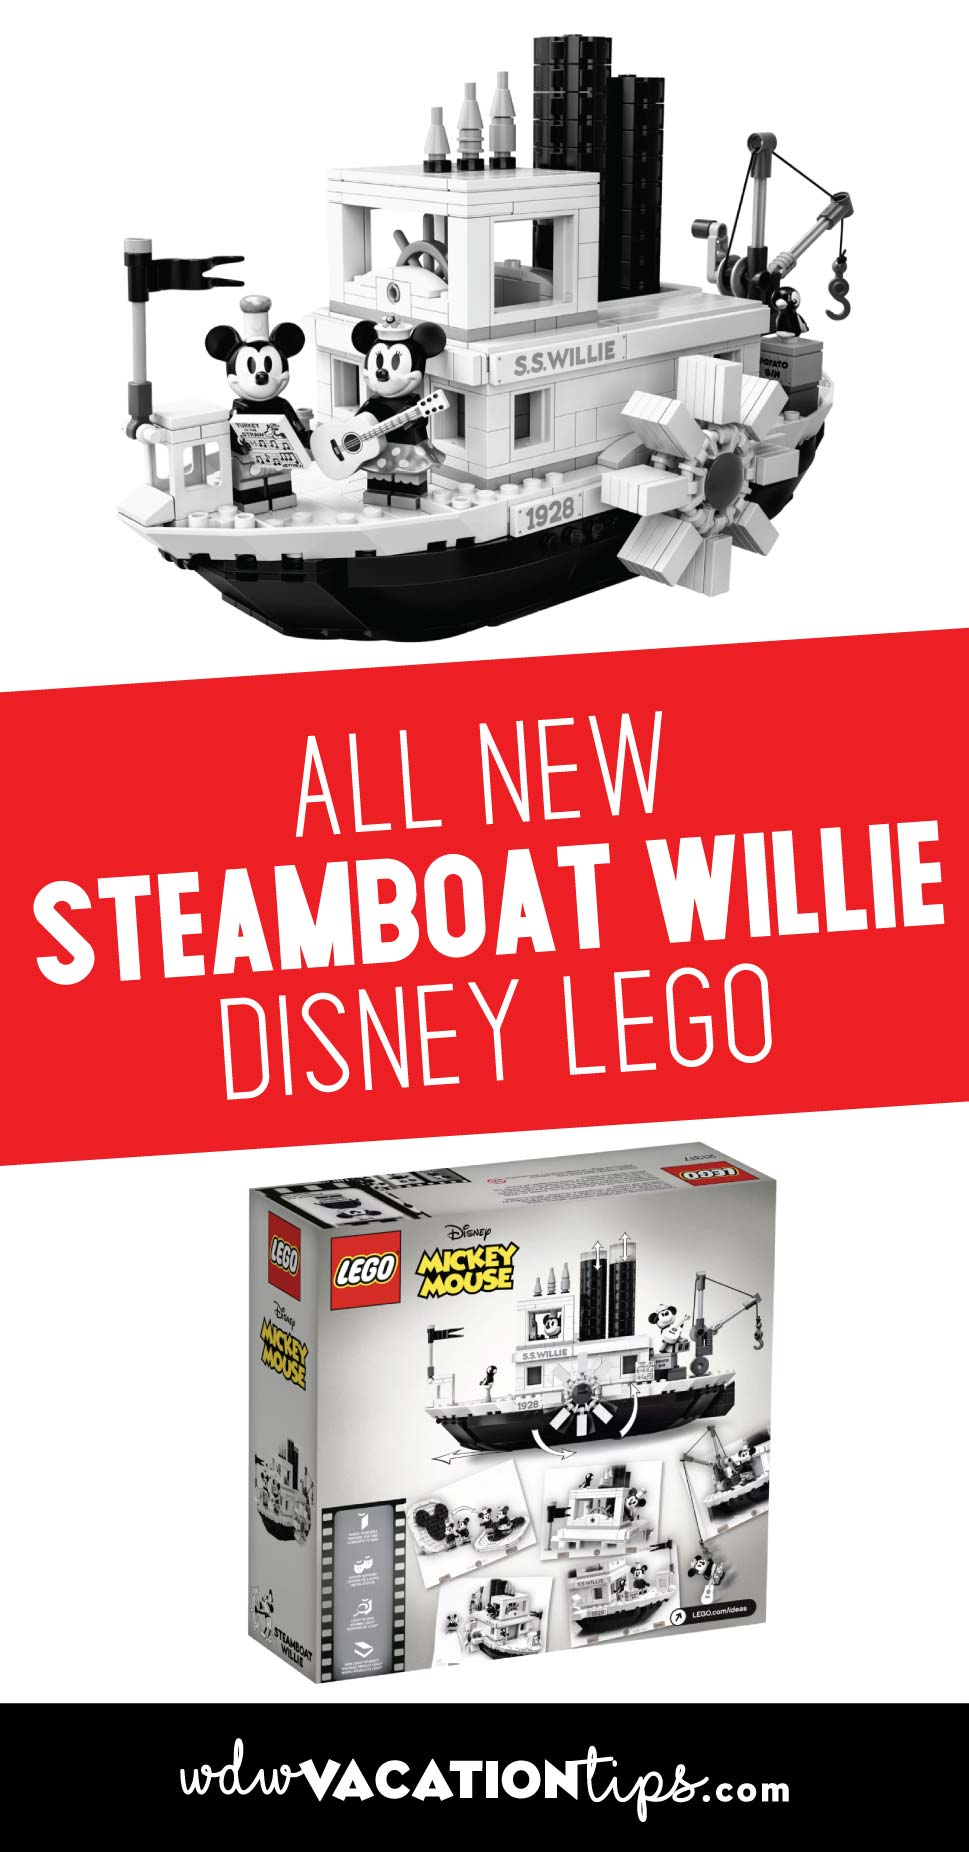 Disney Steamboat Willie Lego